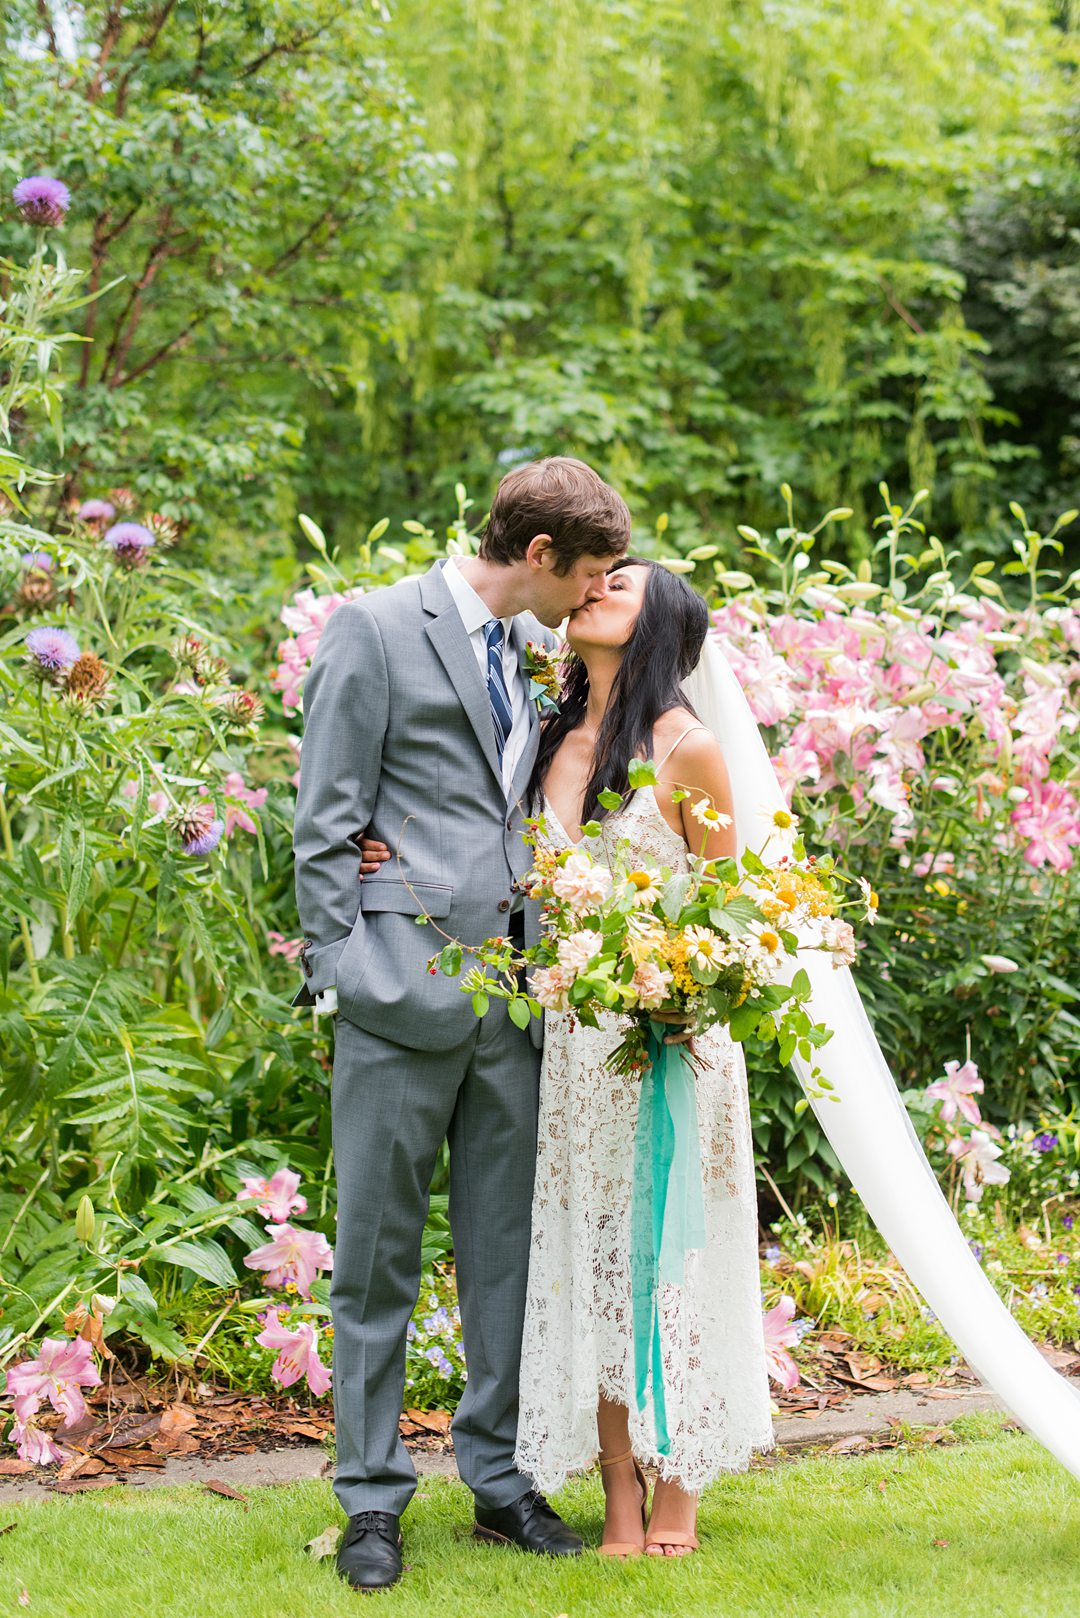 The bride and groom kiss amongst flowers in the park after their small outdoor ceremony. Wedding pictures by Mikkel Paige Photography. #mikkelpaige #raleighwedding #raleighNC #smallwedding